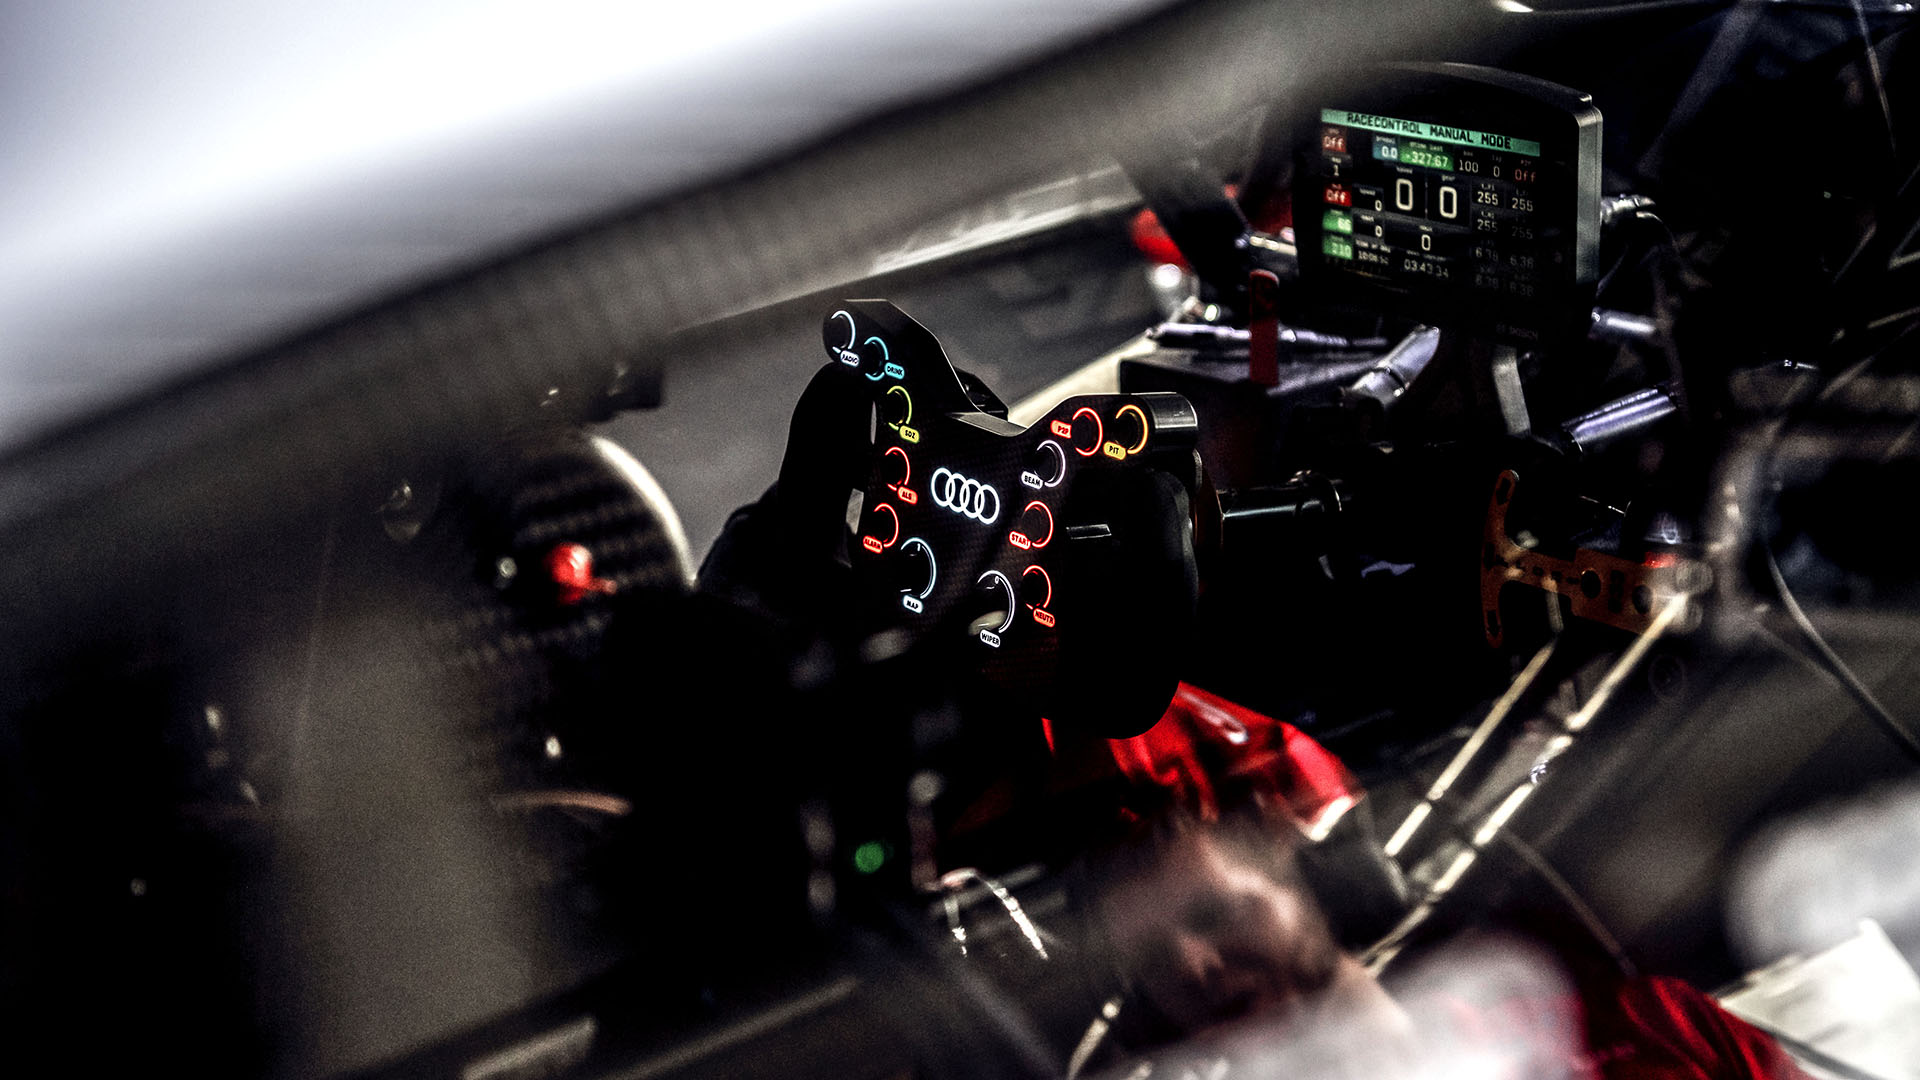 Cockpit of the Audi RS 5 DTM